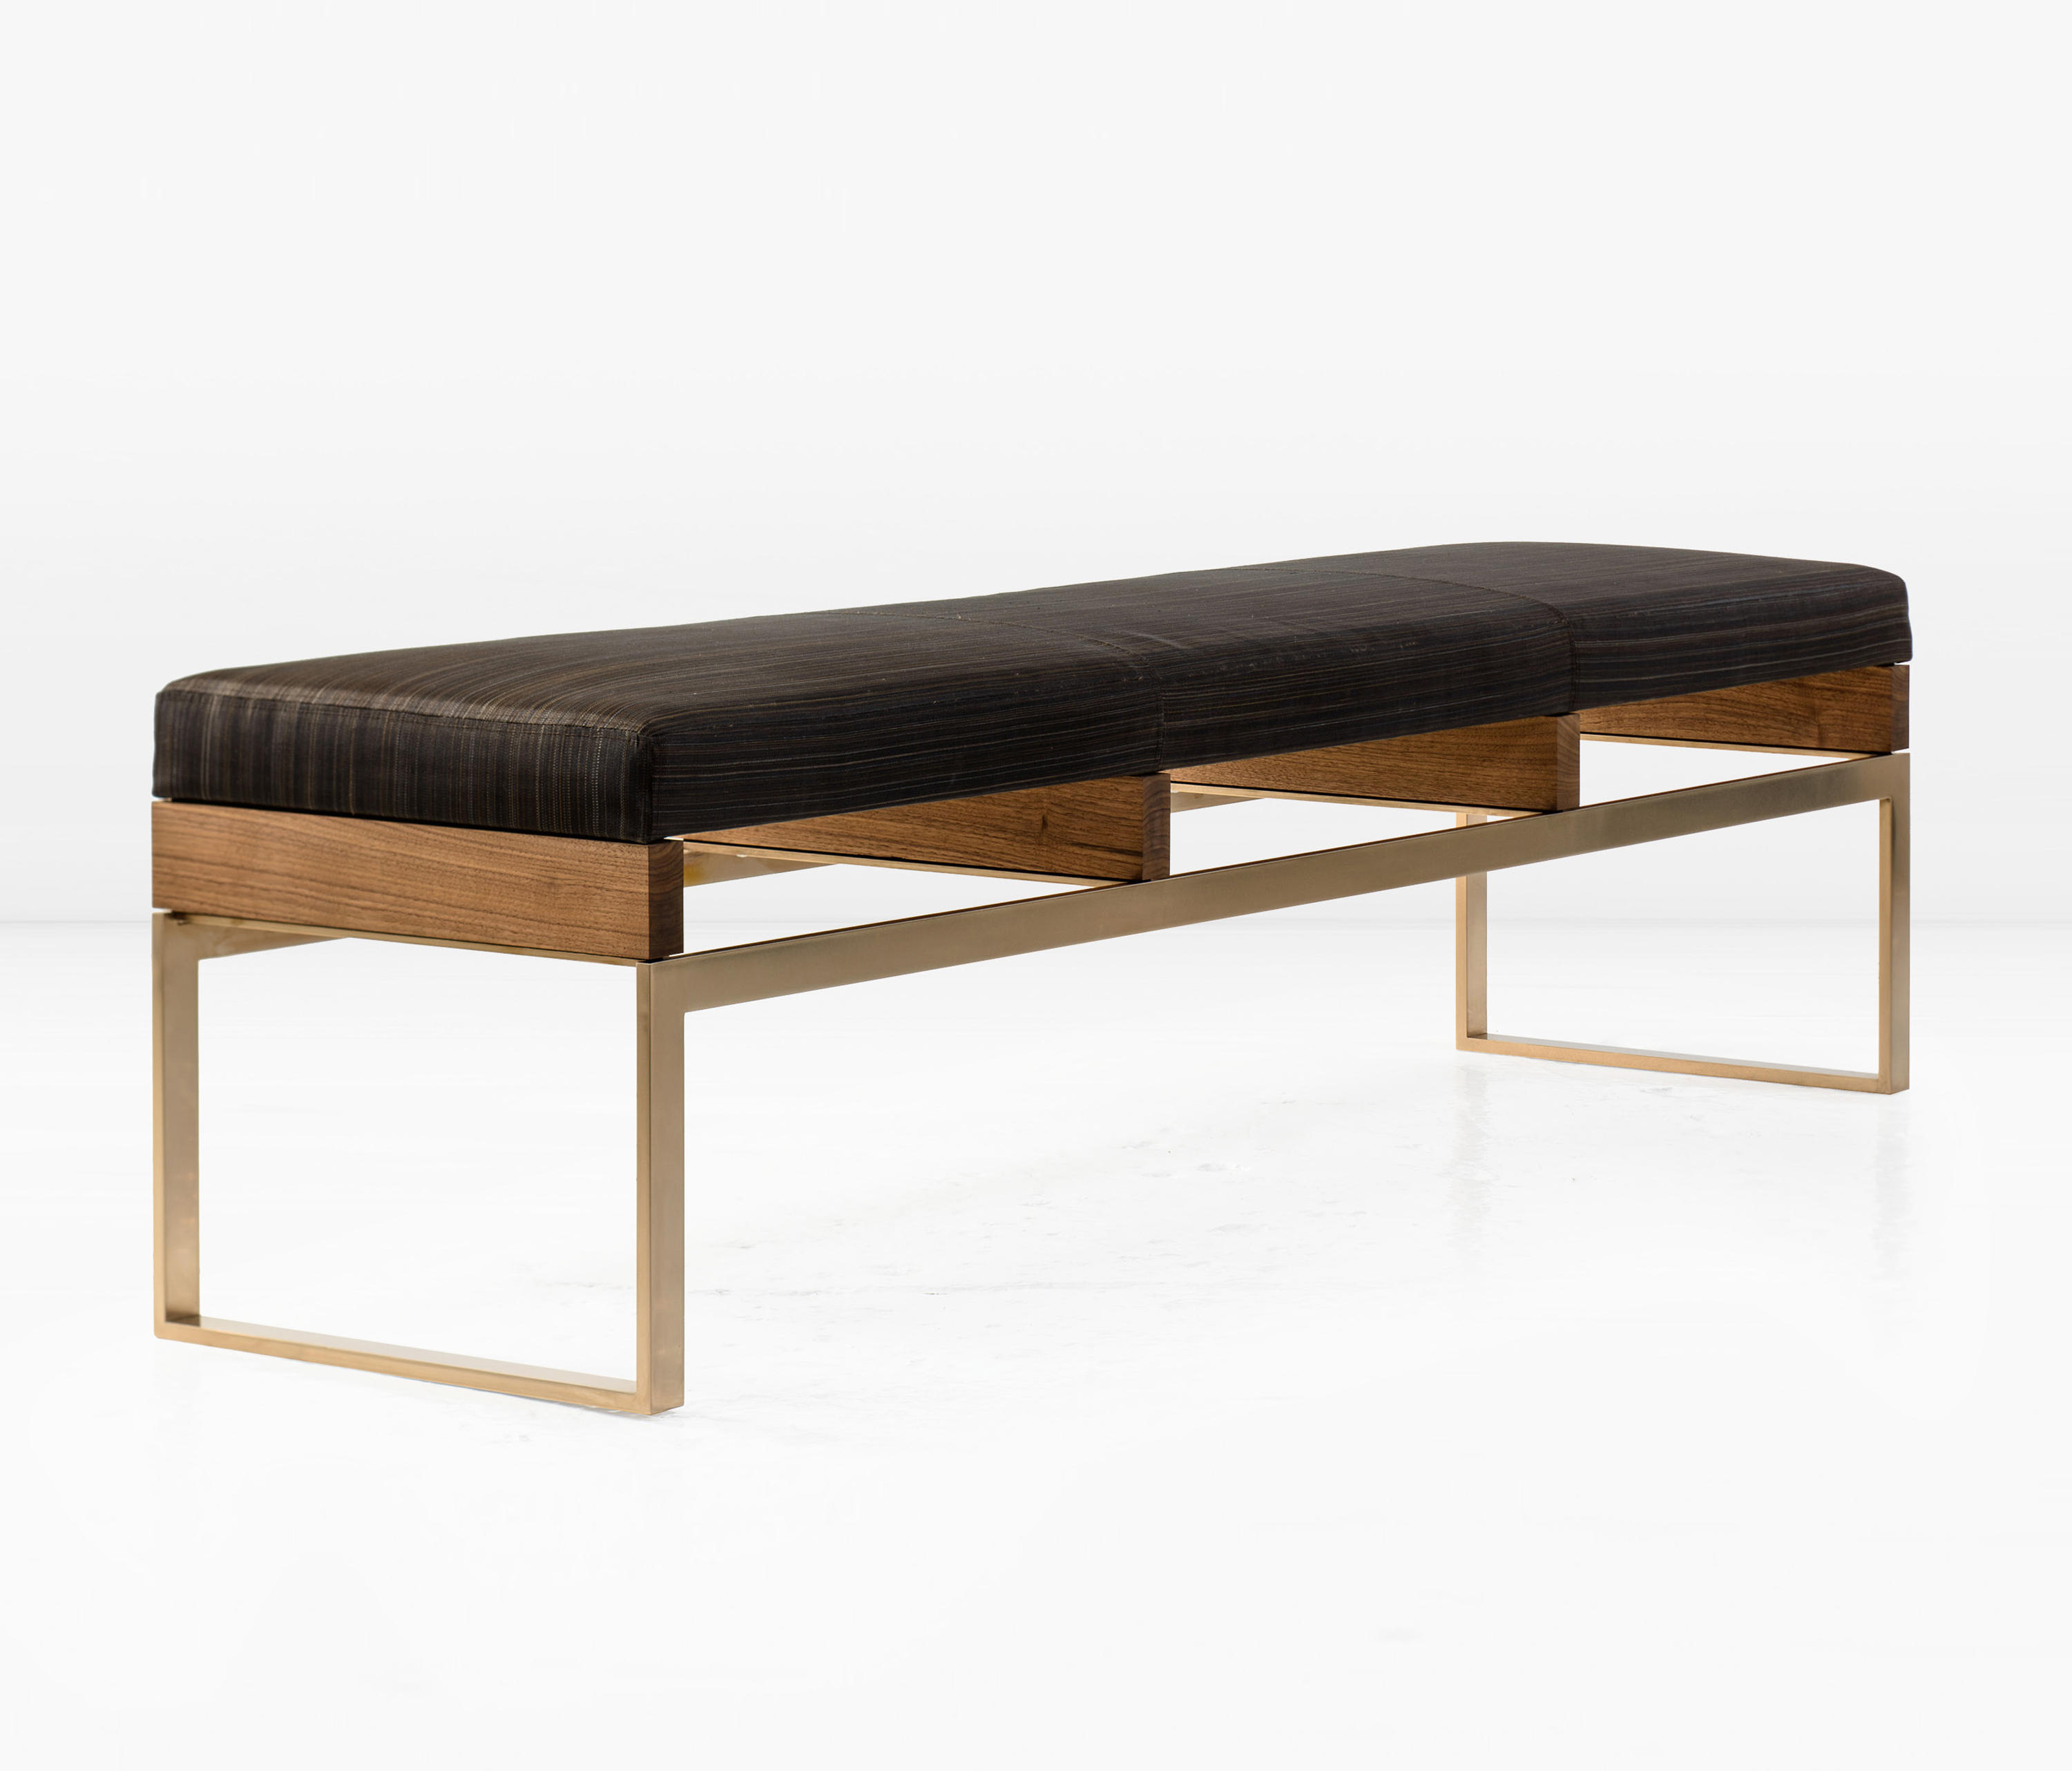 Maxim bench upholstered benches from khouri guzman bunce Upholstered benches